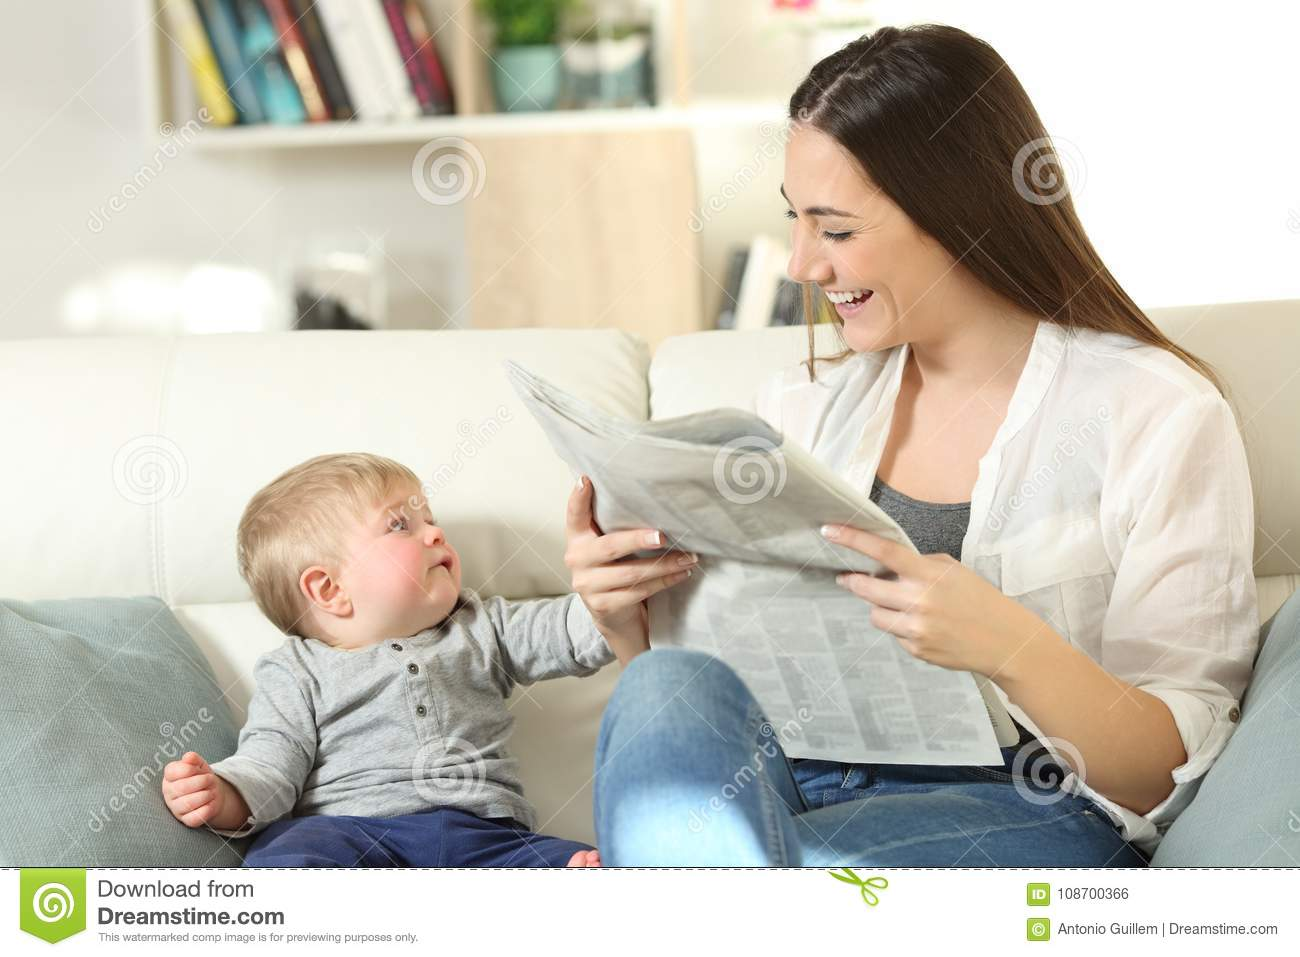 Baby demanding attention of his mother